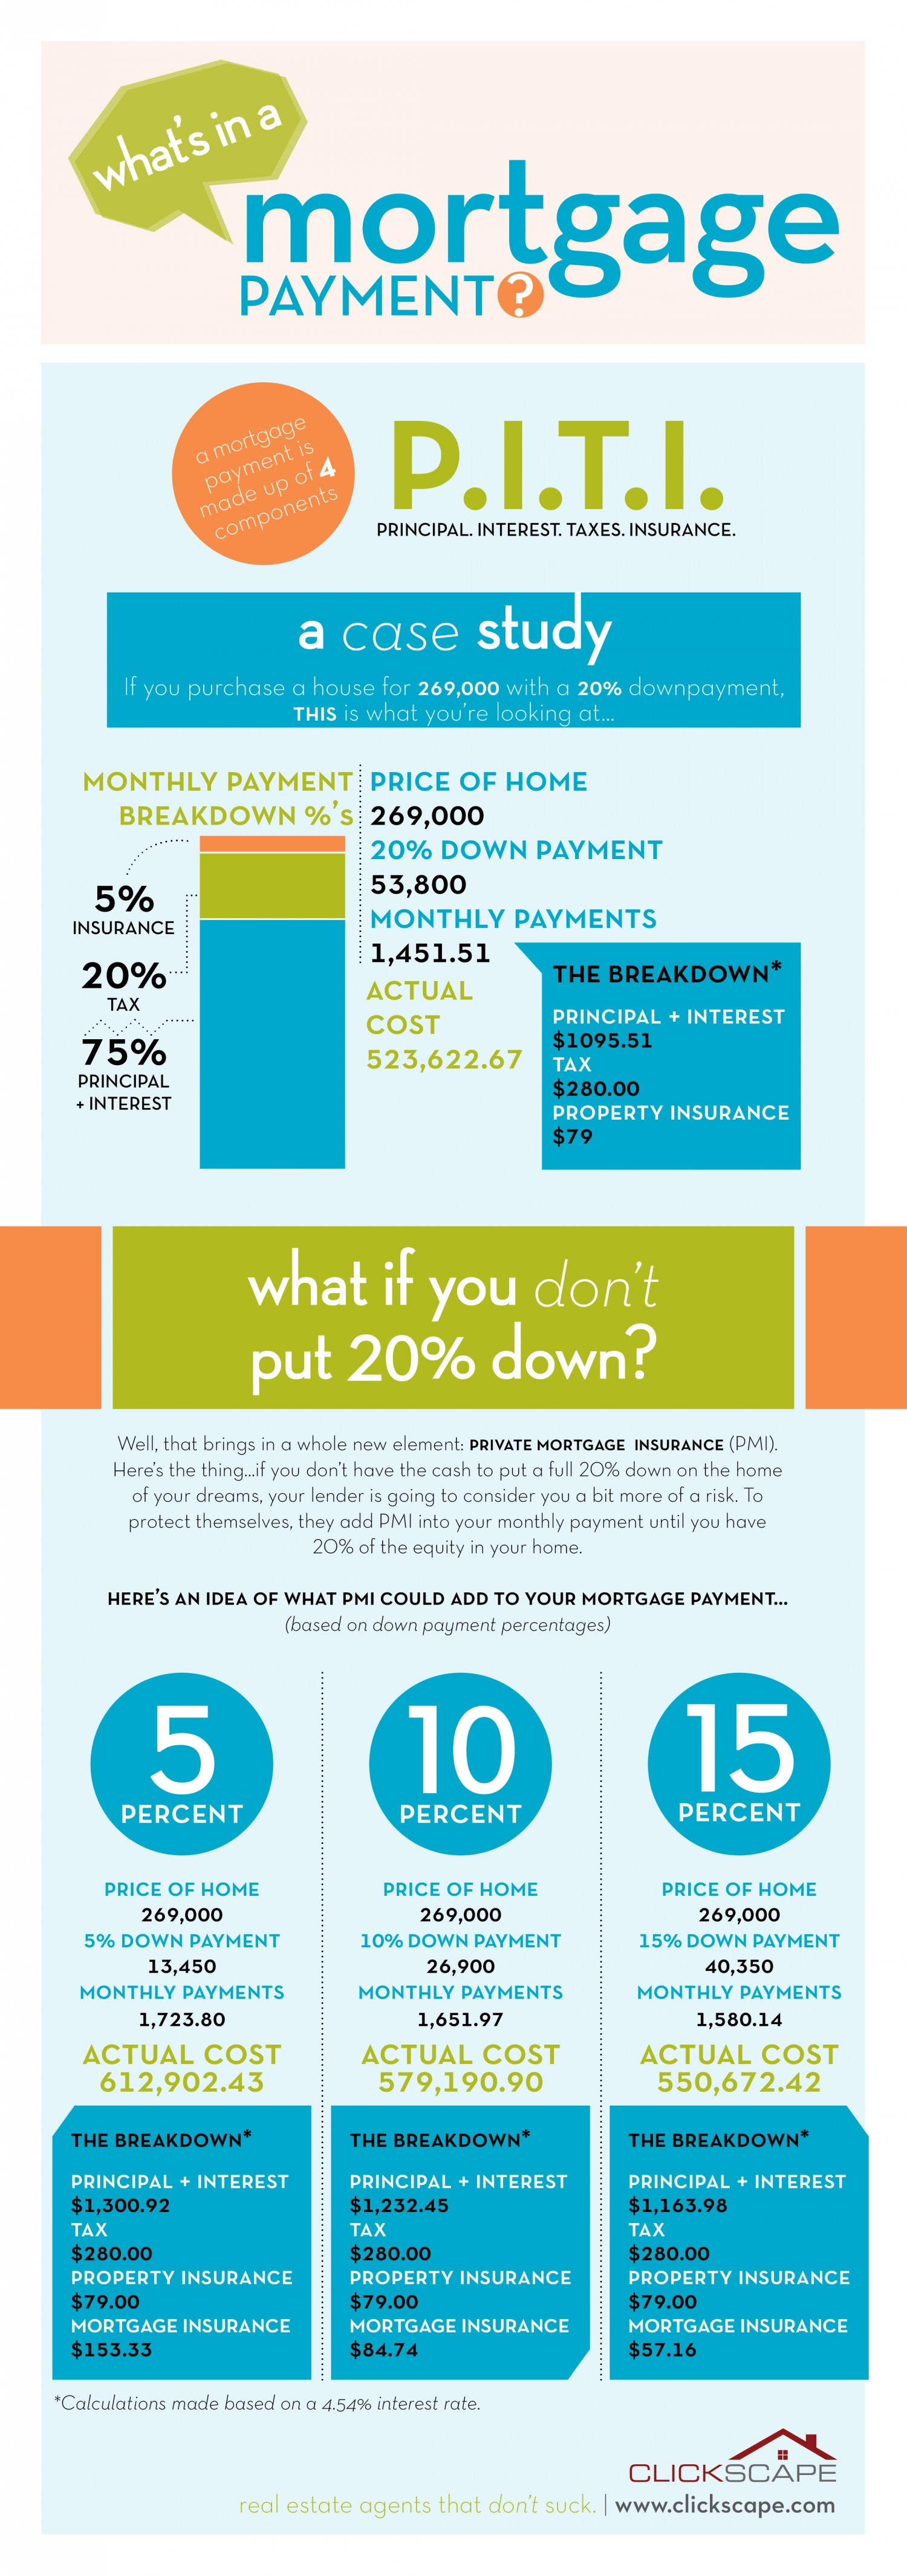 whats-in-a-mortgage-payment